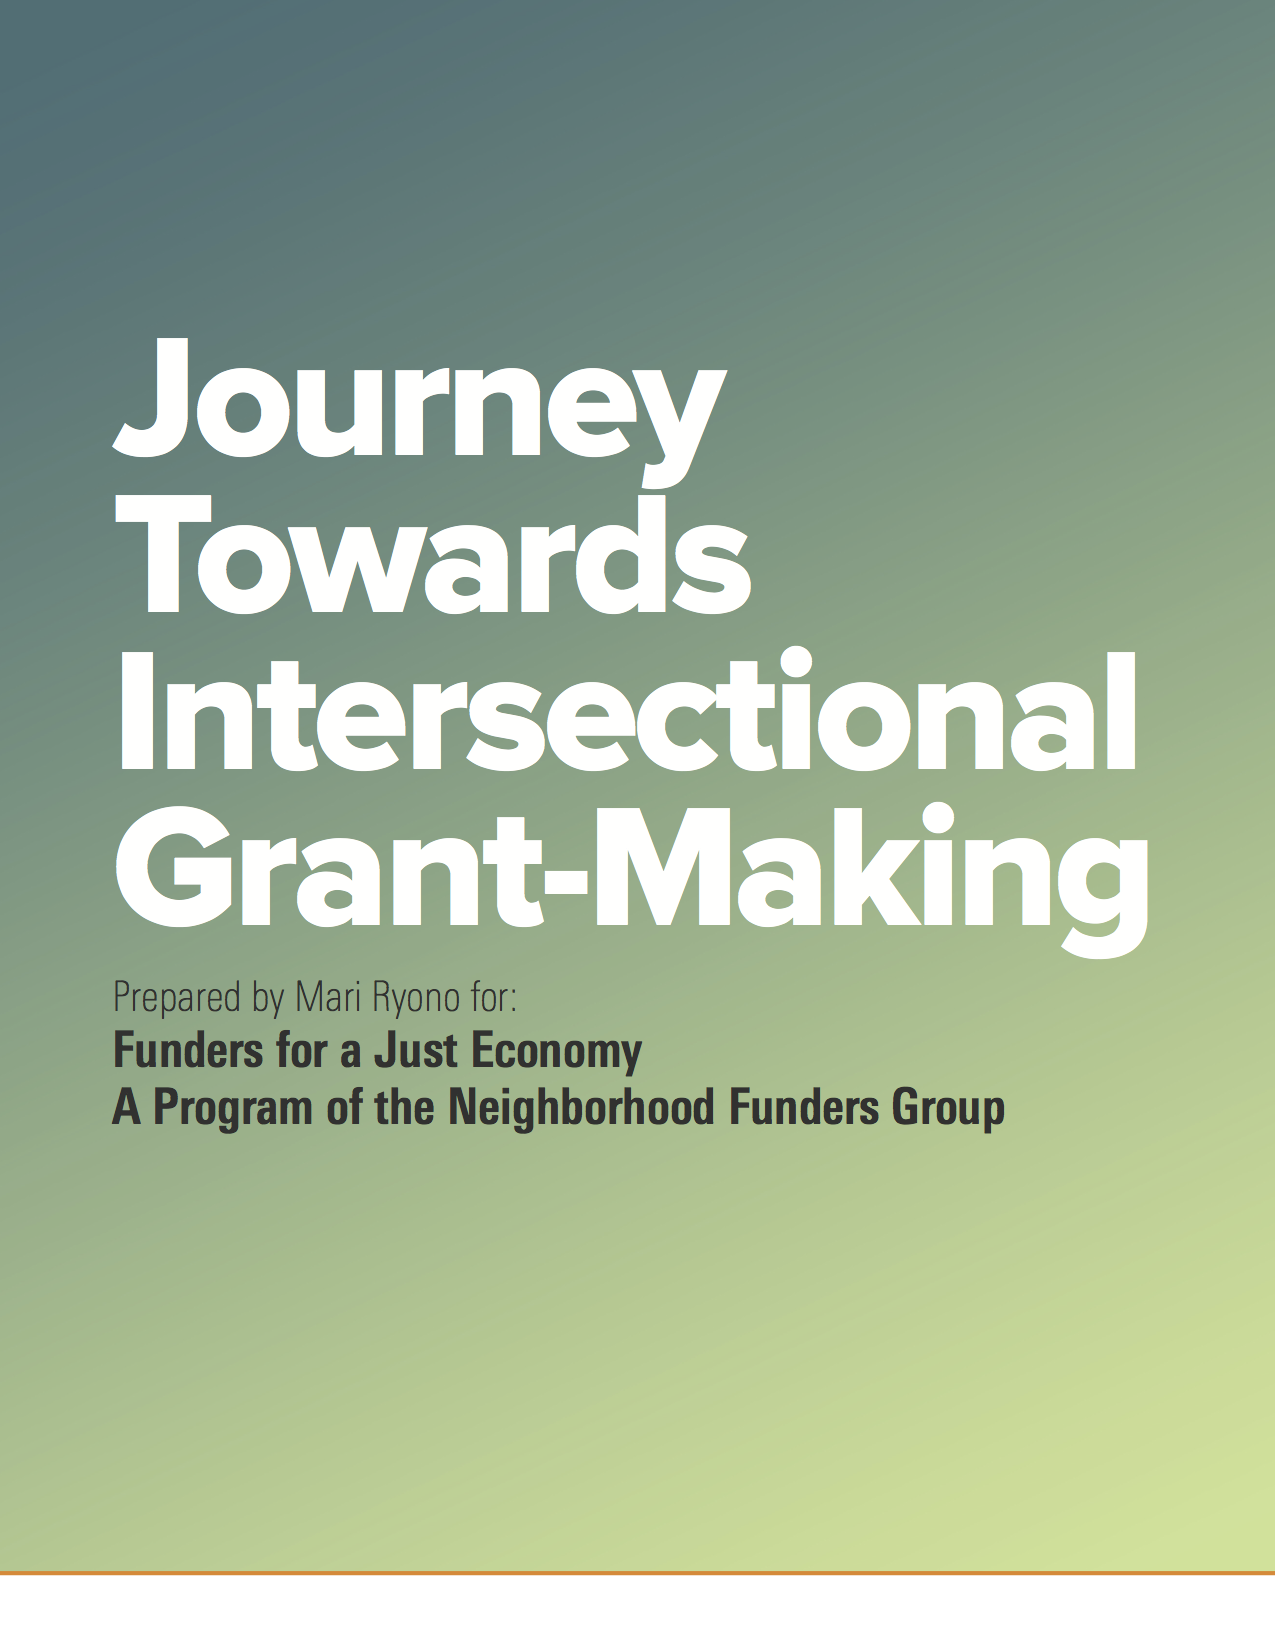 Report_Cover_-_Journey_towards_Intersectional_Grant-making.png